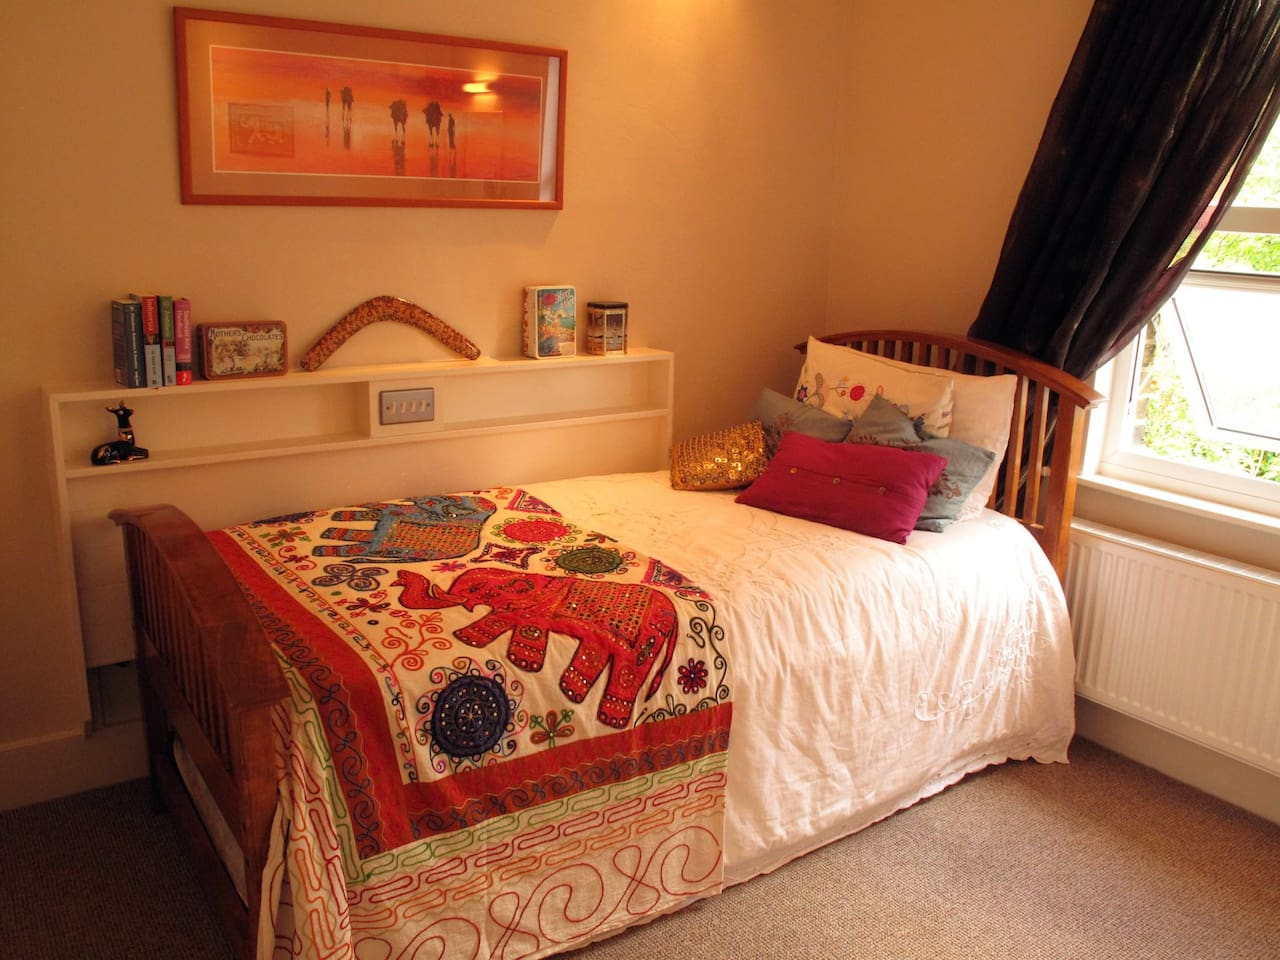 This is not the bedroom on offer, I will upload photos tomorrow. It is similar